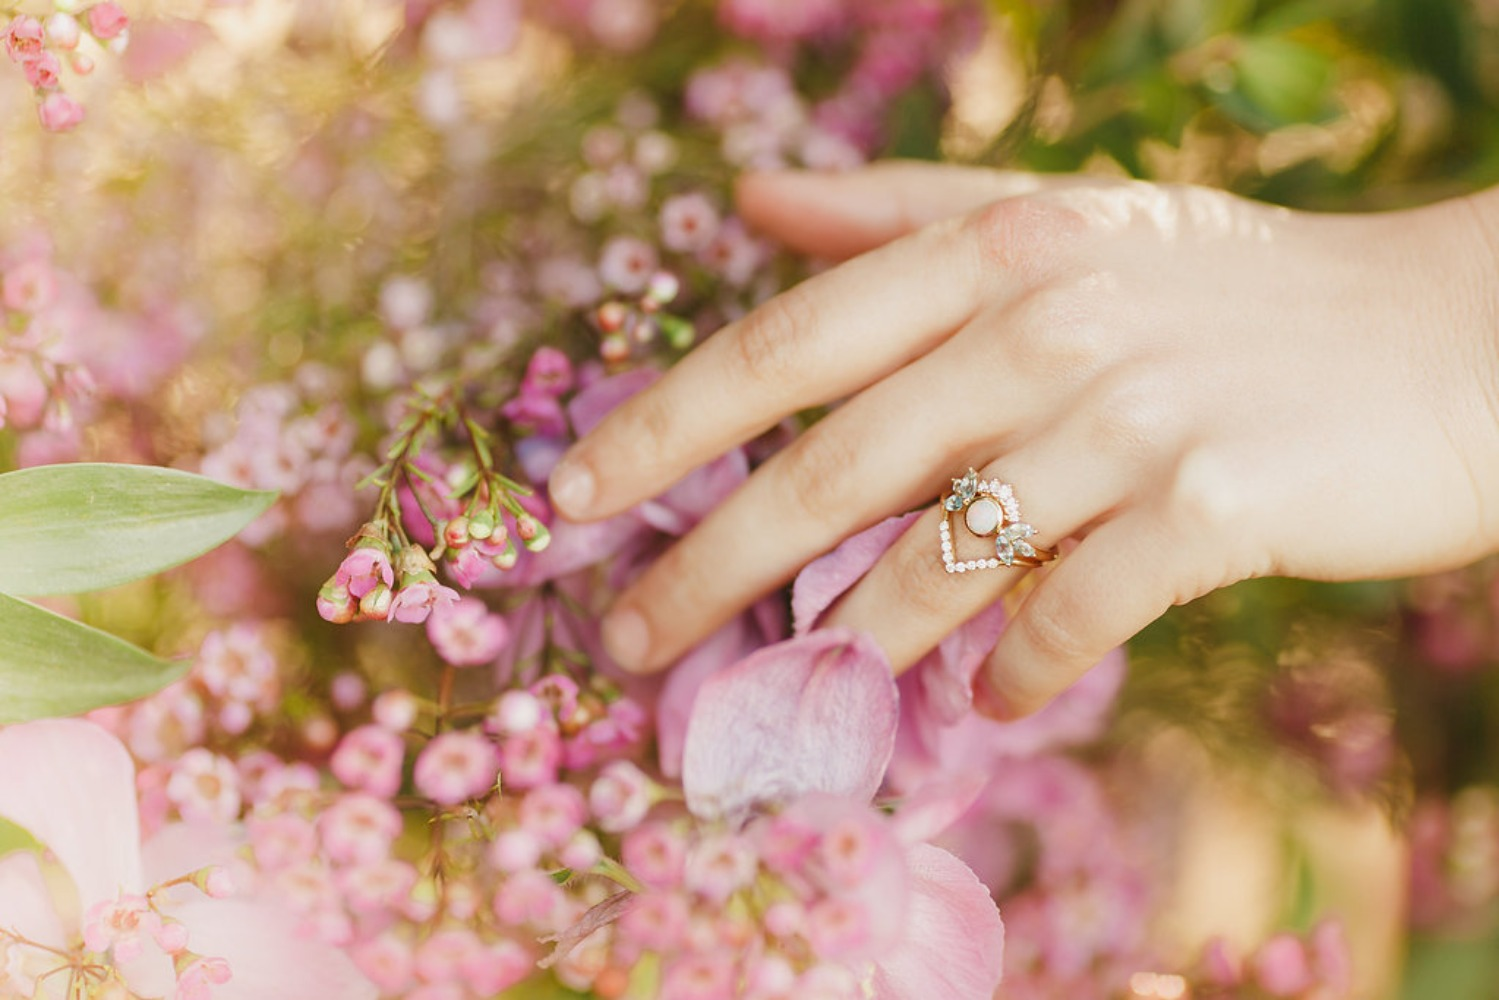 Floral Fairytale Shoot at Heavenly Oaks Flower Farm Bride with Ring